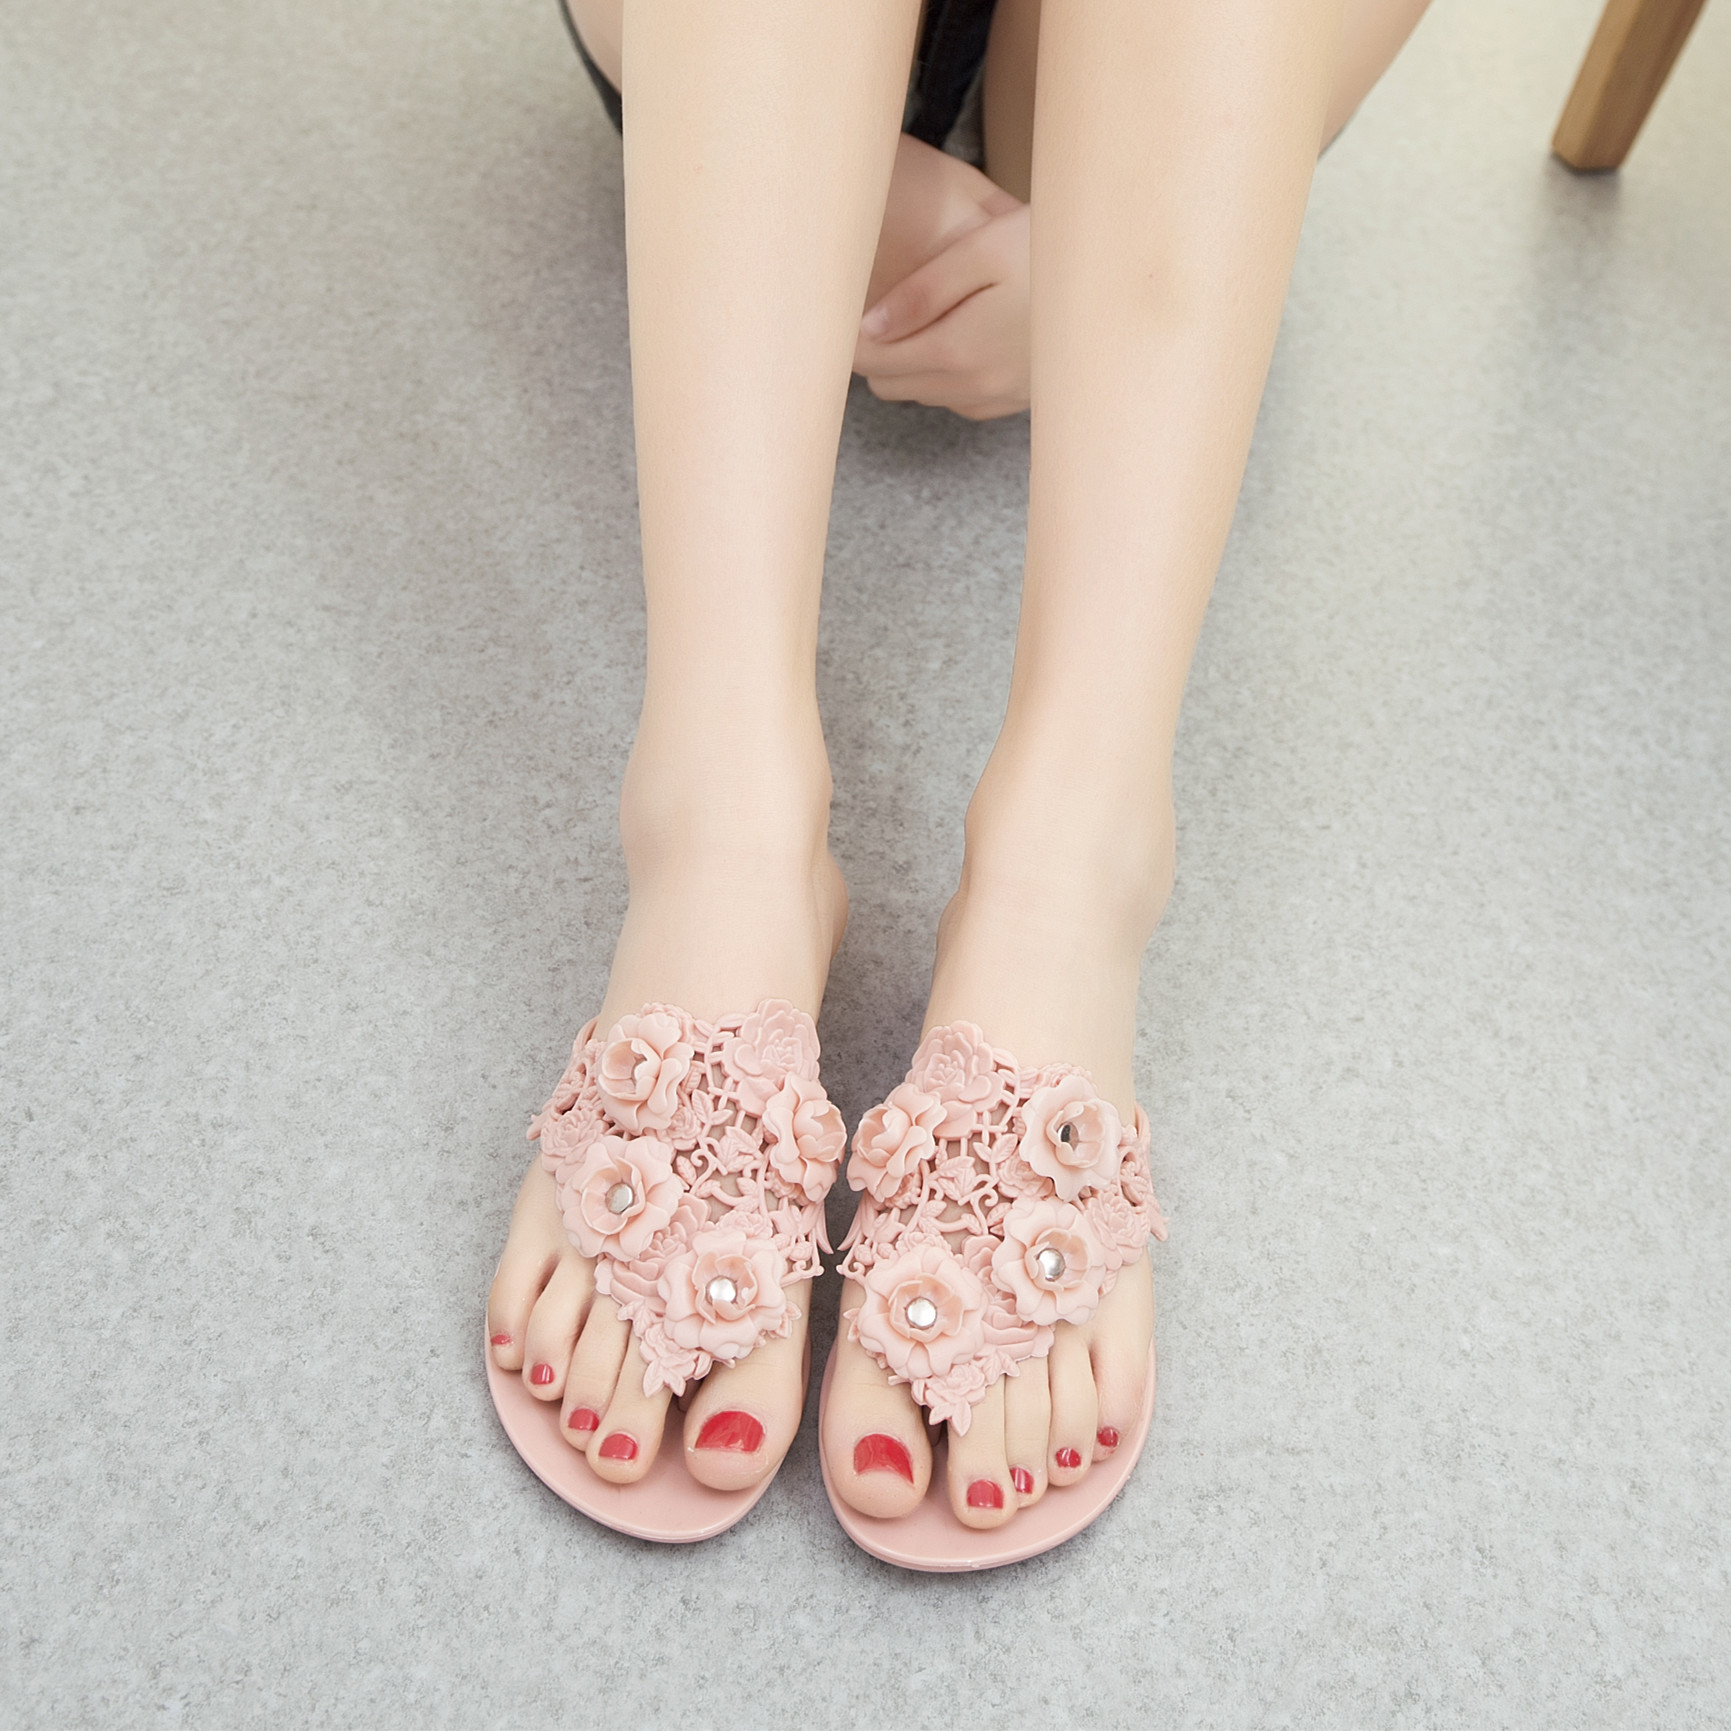 2017 New Summer Snow Soft Bottom Beach Sandals Jelly Shoes Slip Camellia With Flat Flip-flops Sandals Shoes hee grand soft transparent jelly women sandals flat with crystal colorful rhinestones butterfly knot beach shoes xwz3446